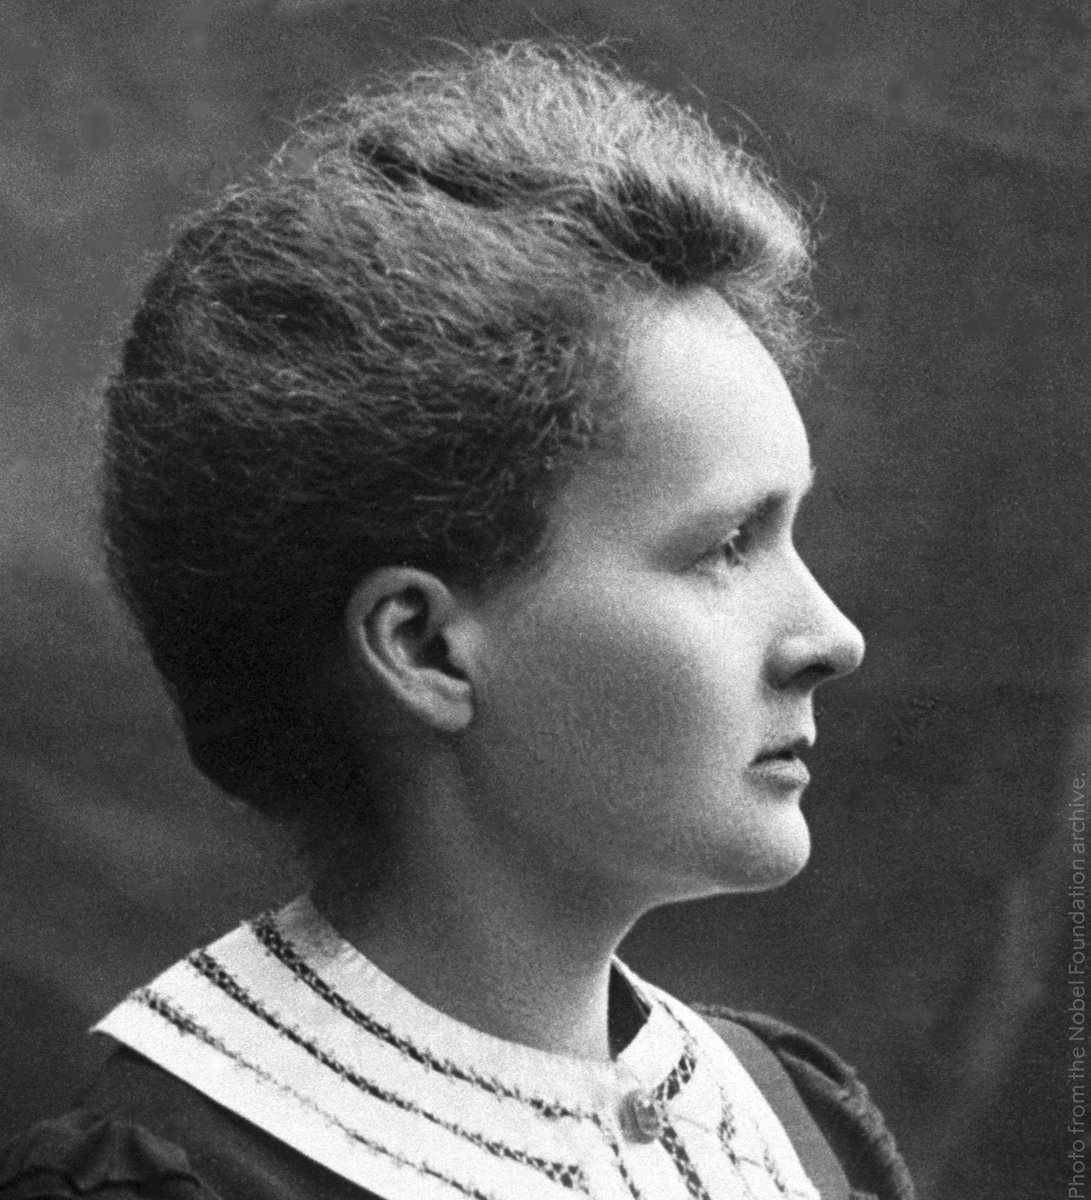 Today we remember one of the worlds greatest scientists: Marie Skłodowska Curie. She died of aplastic anaemia #OnThisDay, 4 July 1934, a result of years of exposure to radiation through her work. Learn more about this remarkable Nobel Laureate: bit.ly/2m2suJ7